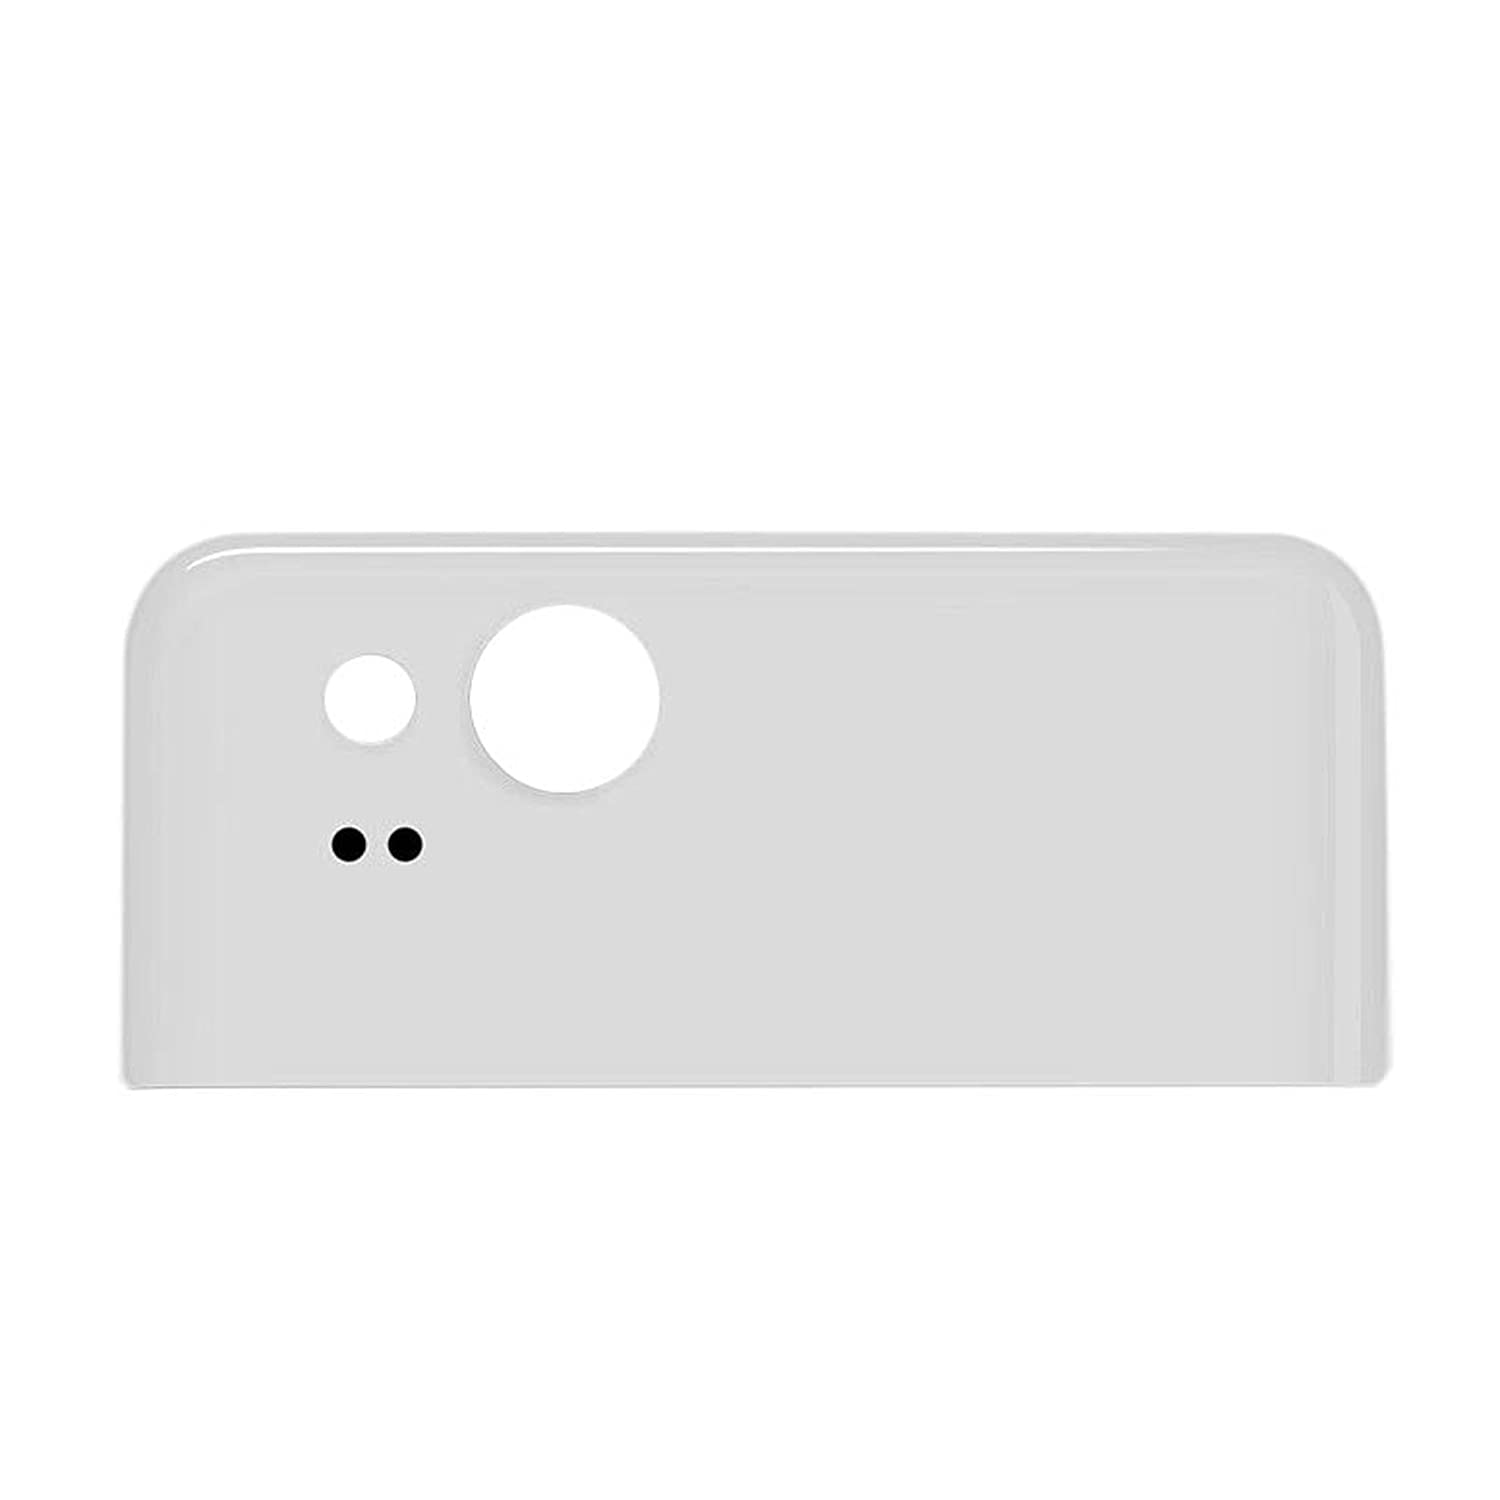 Dogxiong Black Back Rear Battery Housing Top Upper Part Really 100% True Genuine Glass Camera Lens Cover + Adhesive Fix Replacement Parts for Google Pixel 2 XL Google_Pixel2XL_HGBoLi_Hei